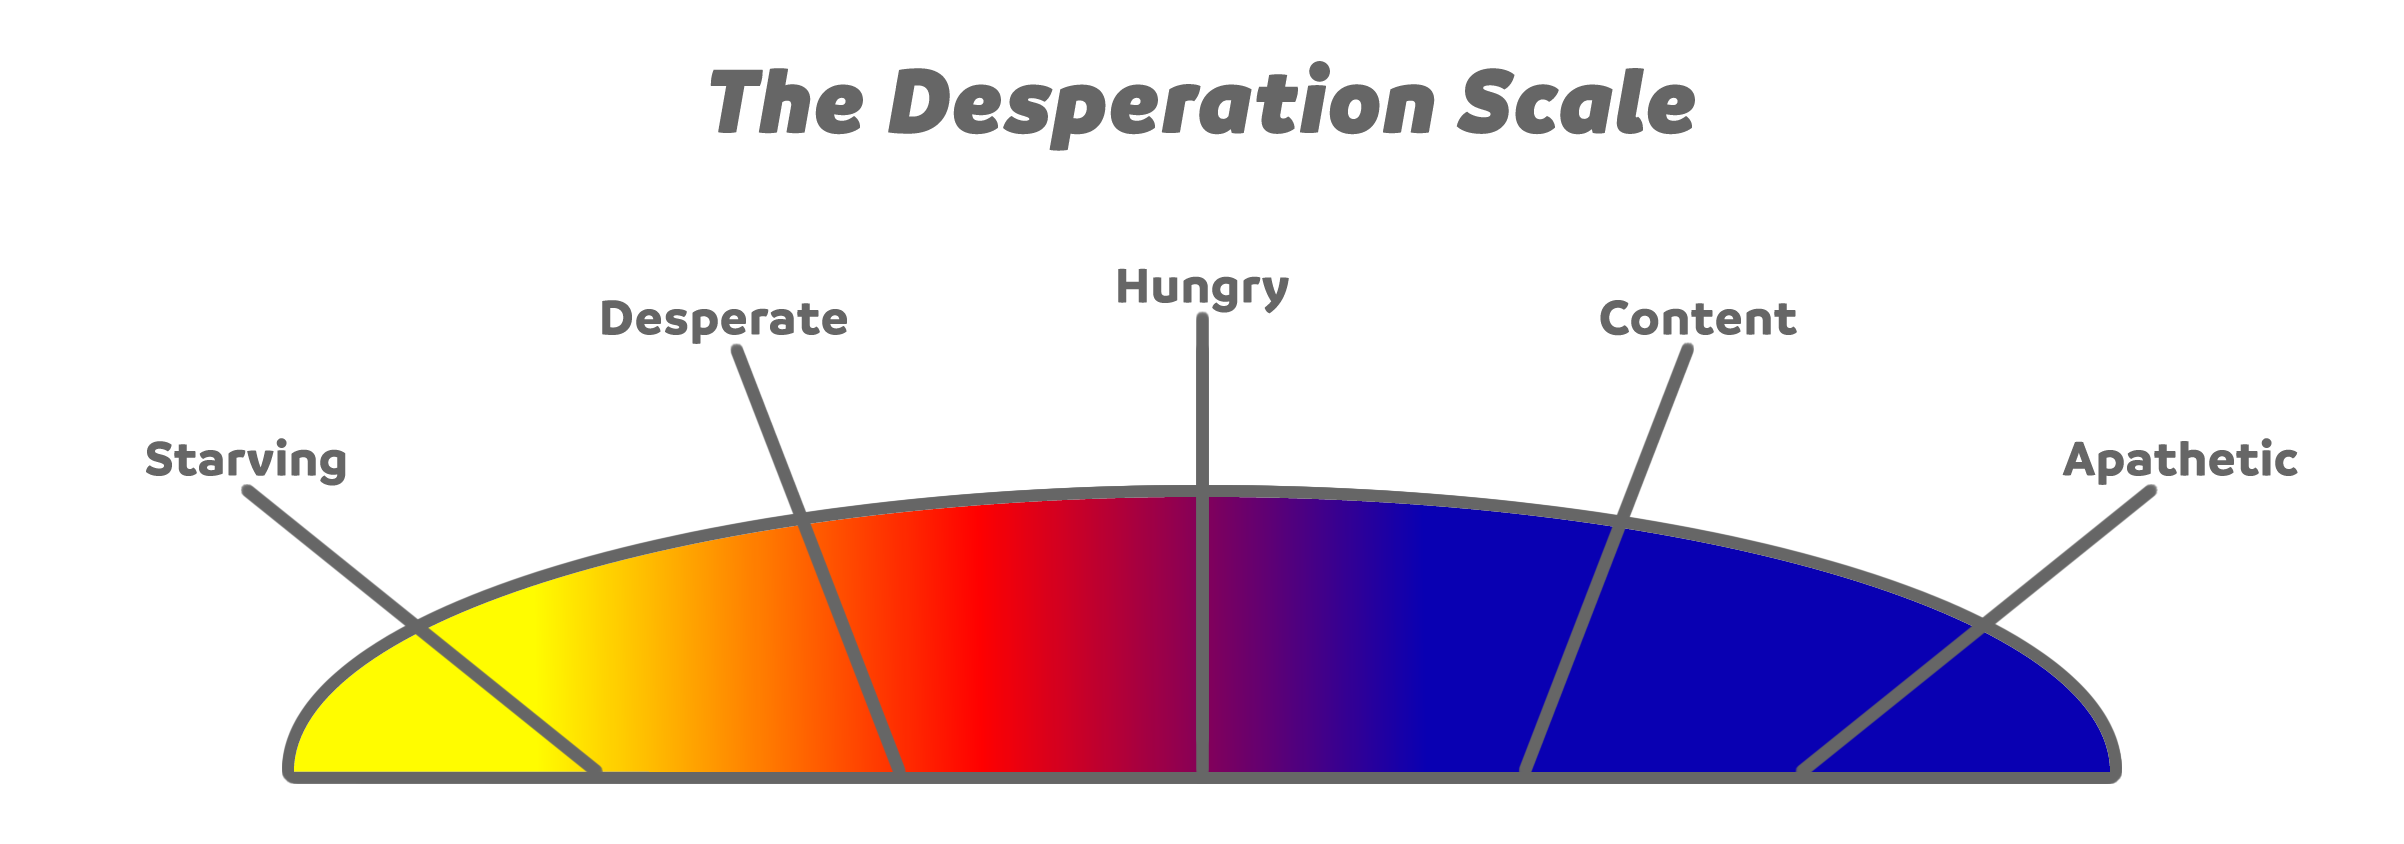 The desperation scale